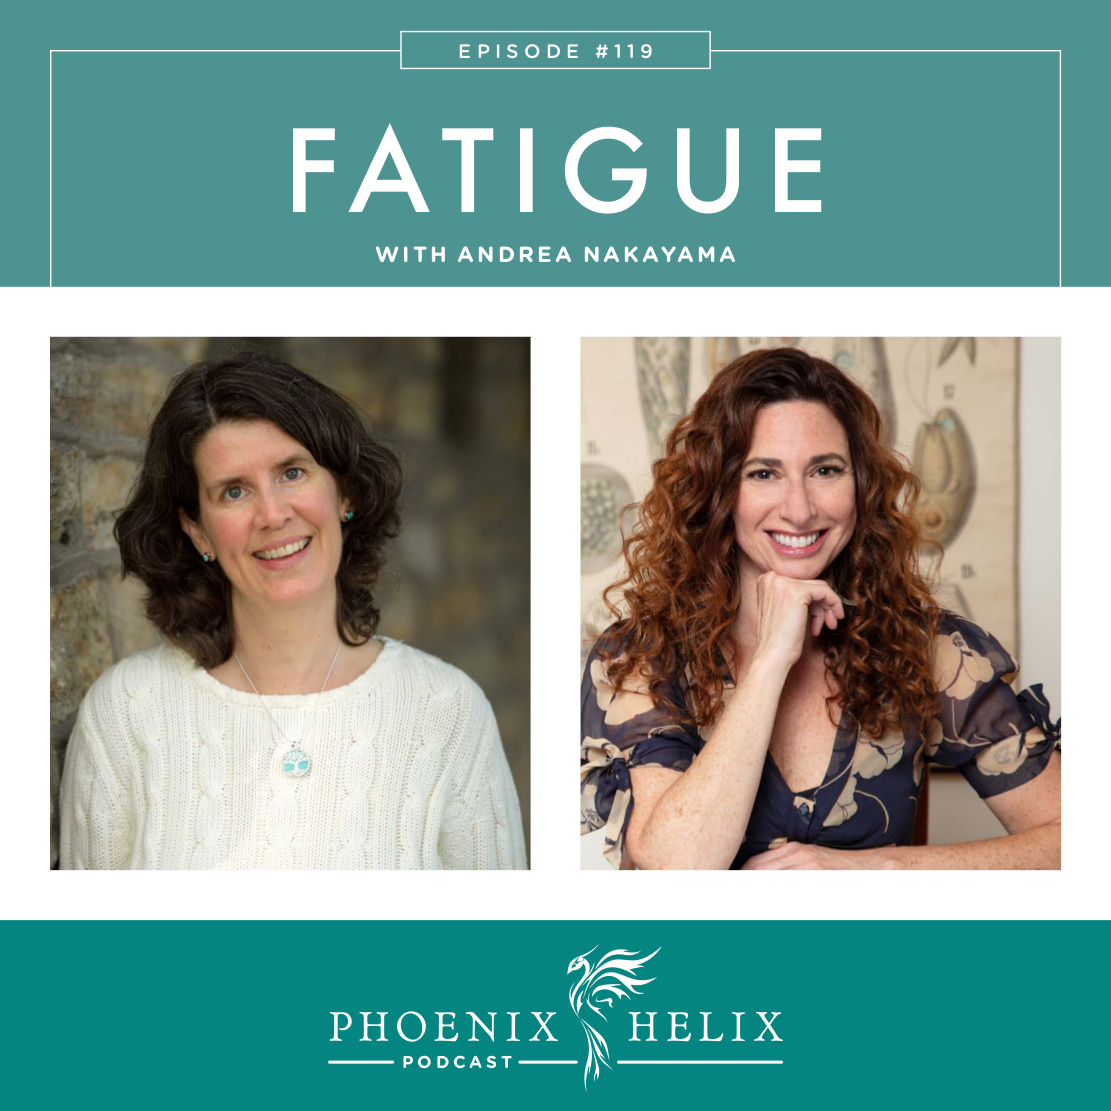 Fatigue with Andrea Nakayama | Phoenix Helix Podcast